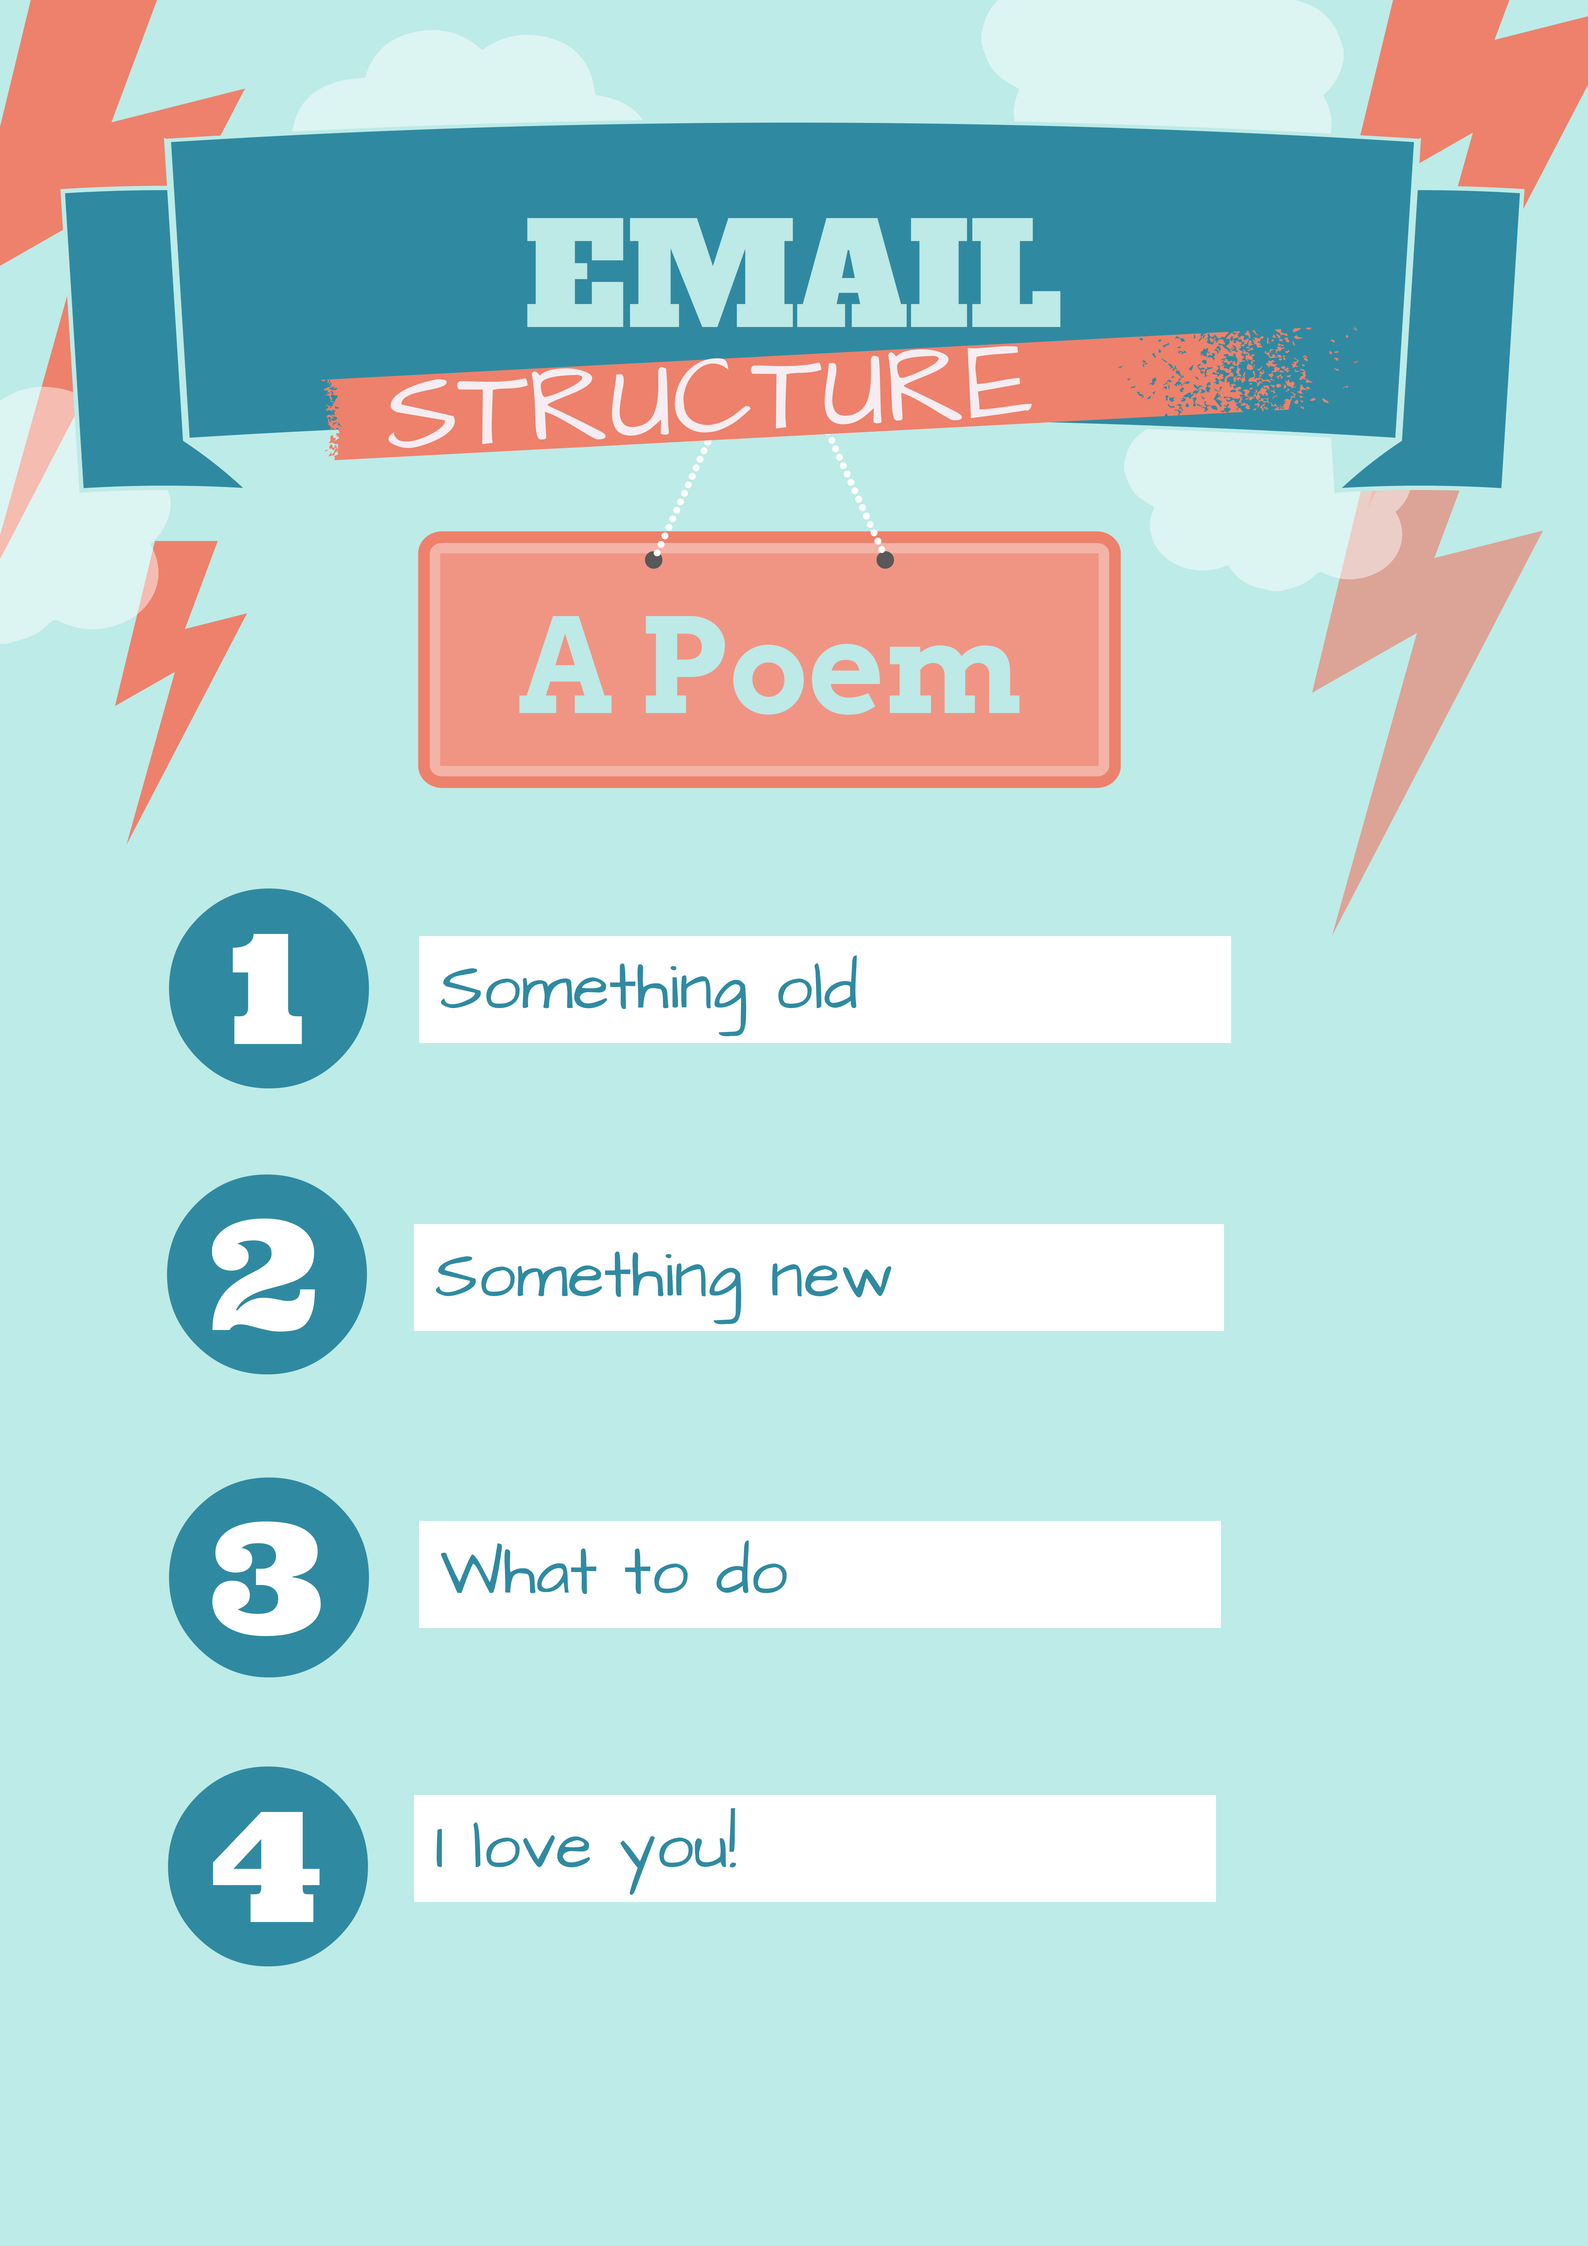 Business writing tip 132structure matters dalice trost email structure canva graphic altavistaventures Image collections